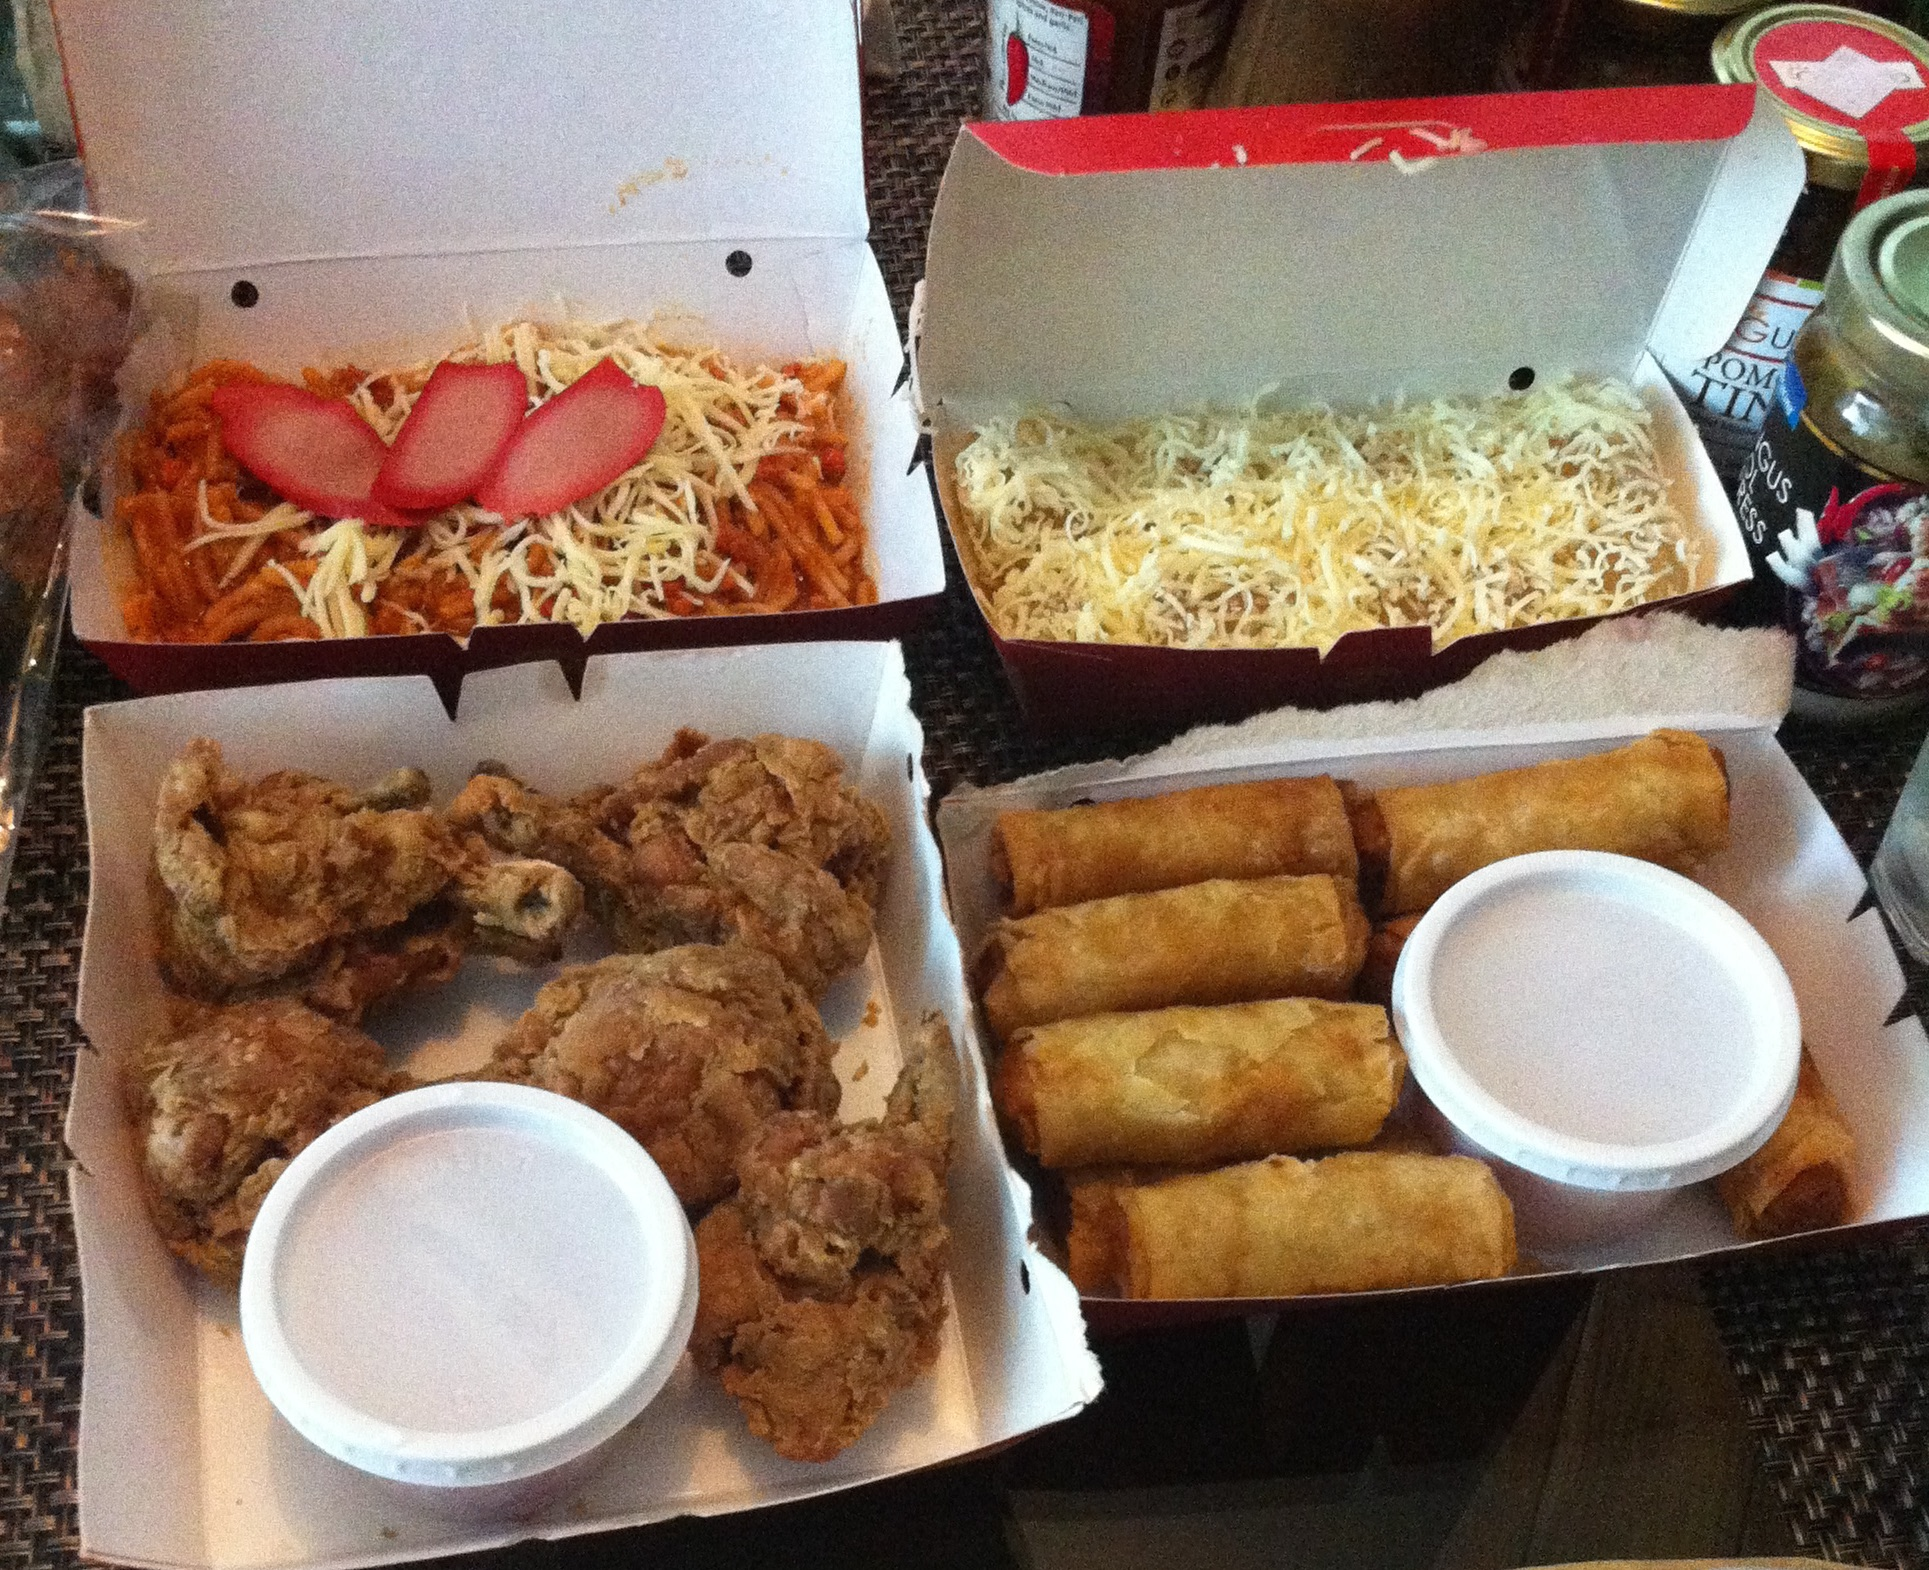 Popular fast food: Filipino spaghetti, fried chicken, lumpia( summer rolls ), and pichi pichi -- a steamed cassava dessert, this time covered in cheese.